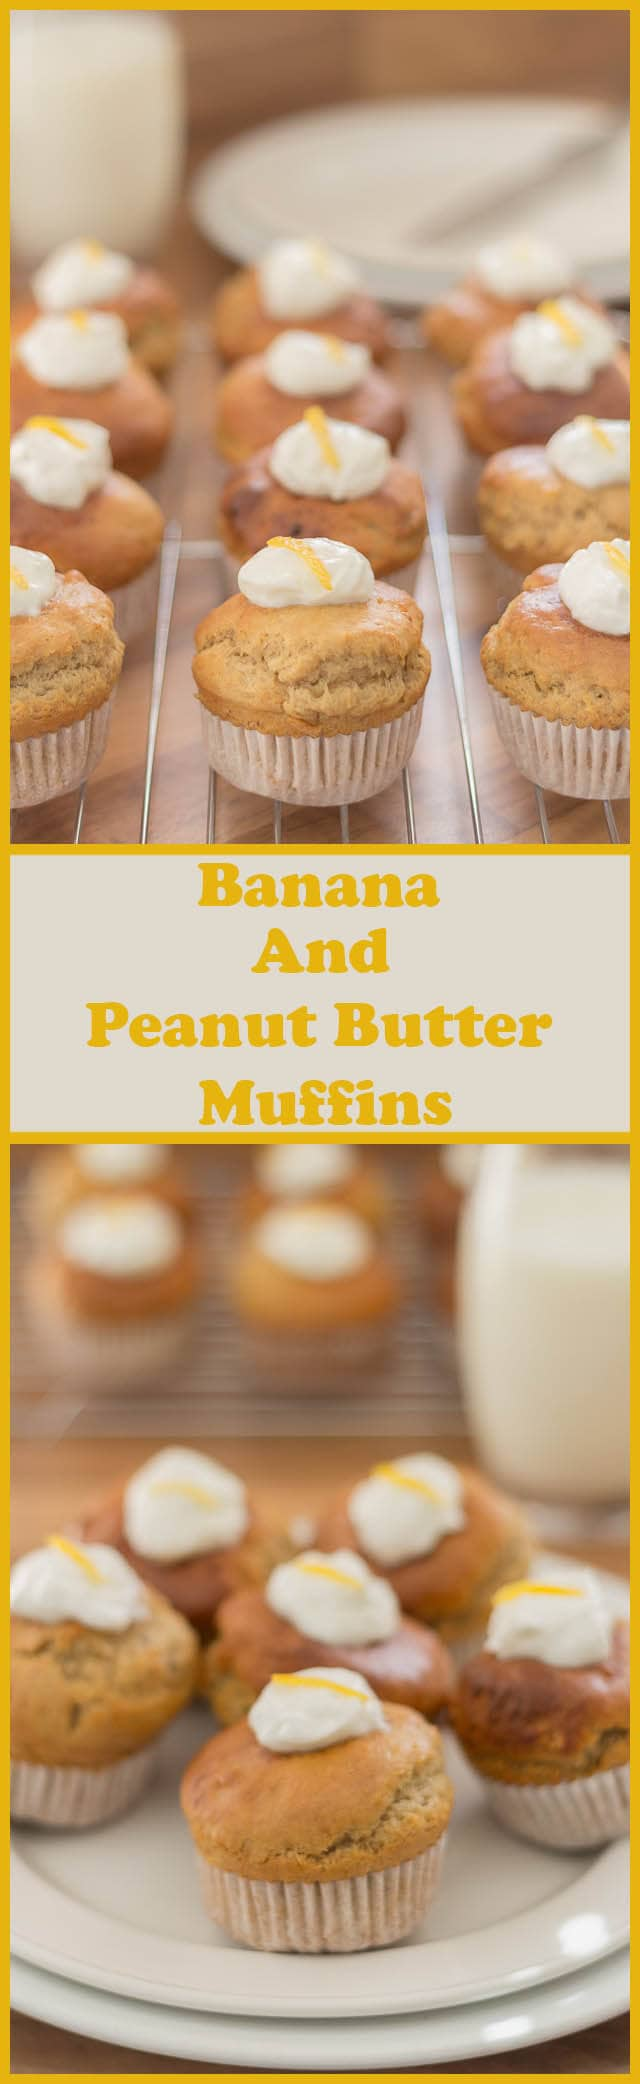 Low fat banana peanut butter muffins. Delicious peanut butter with that sweet banana taste and a beautiful moist textured centre with a contrasting tangy topping. Peanut butter and banana lovers will crave this recipe! Plus its relatively guilt free recipe at only 184 calories per muffin!